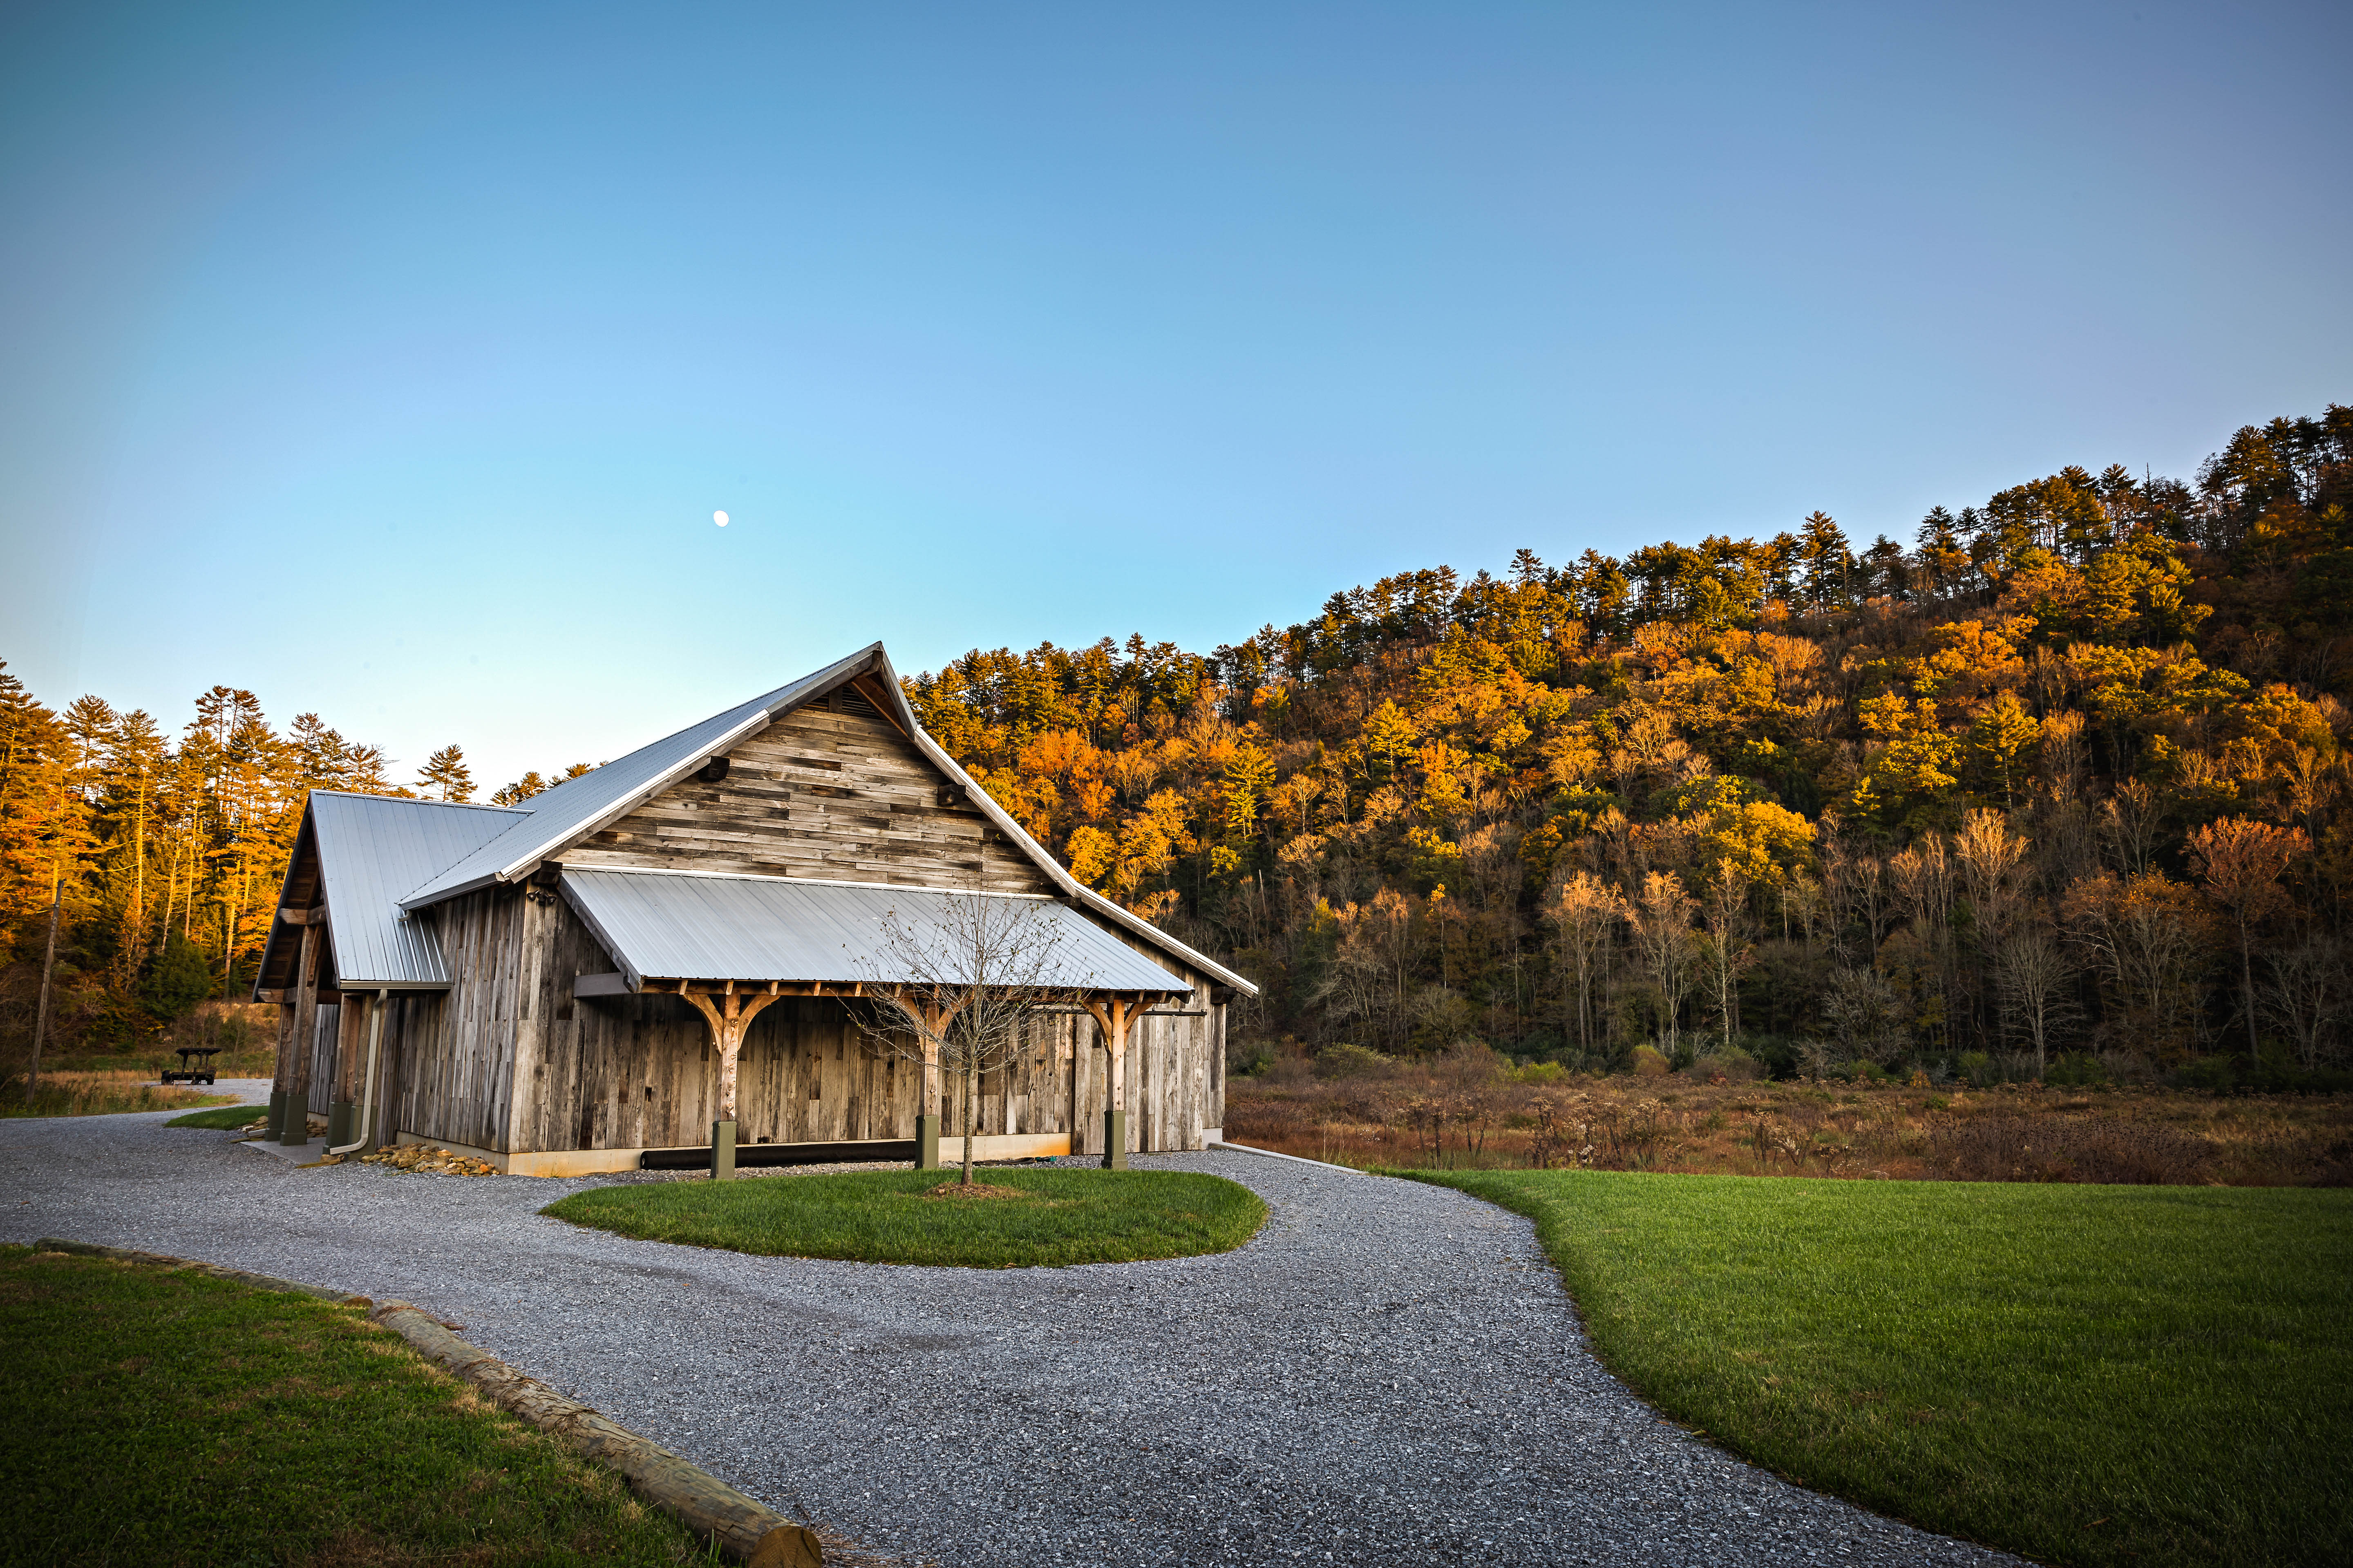 Moon over Wedding Venue Barn East Tennessee Smoky Mountains